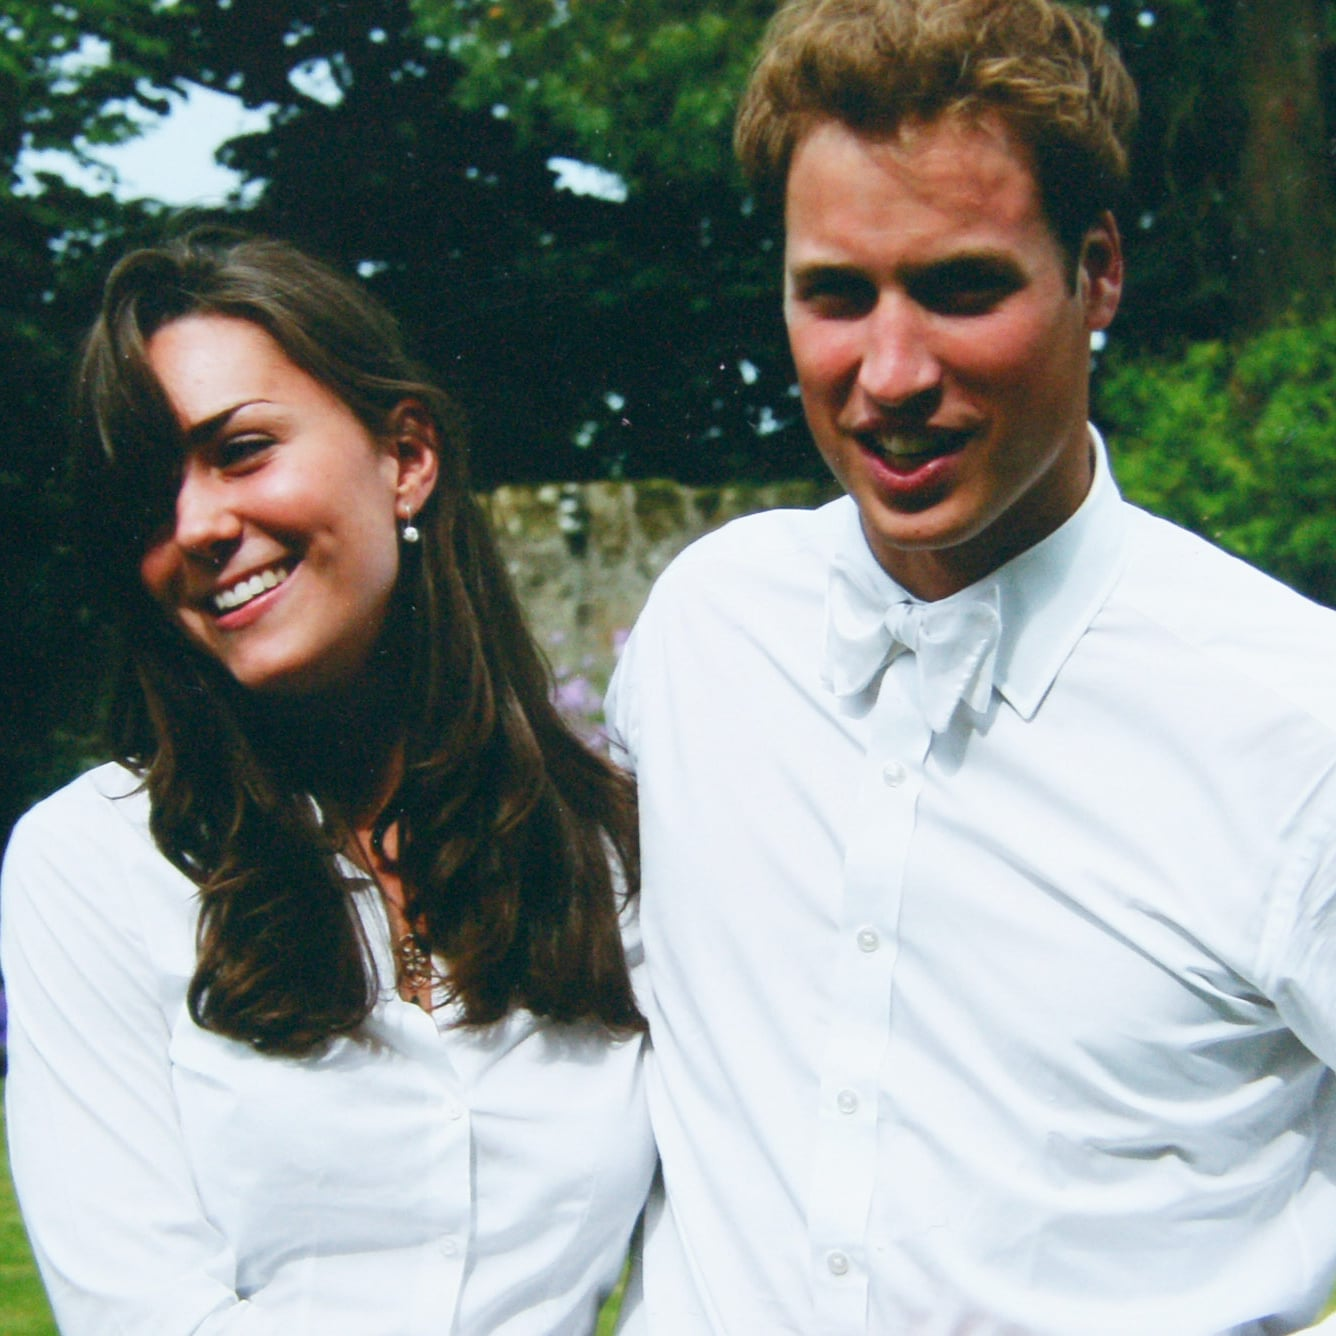 william and kate dating photos